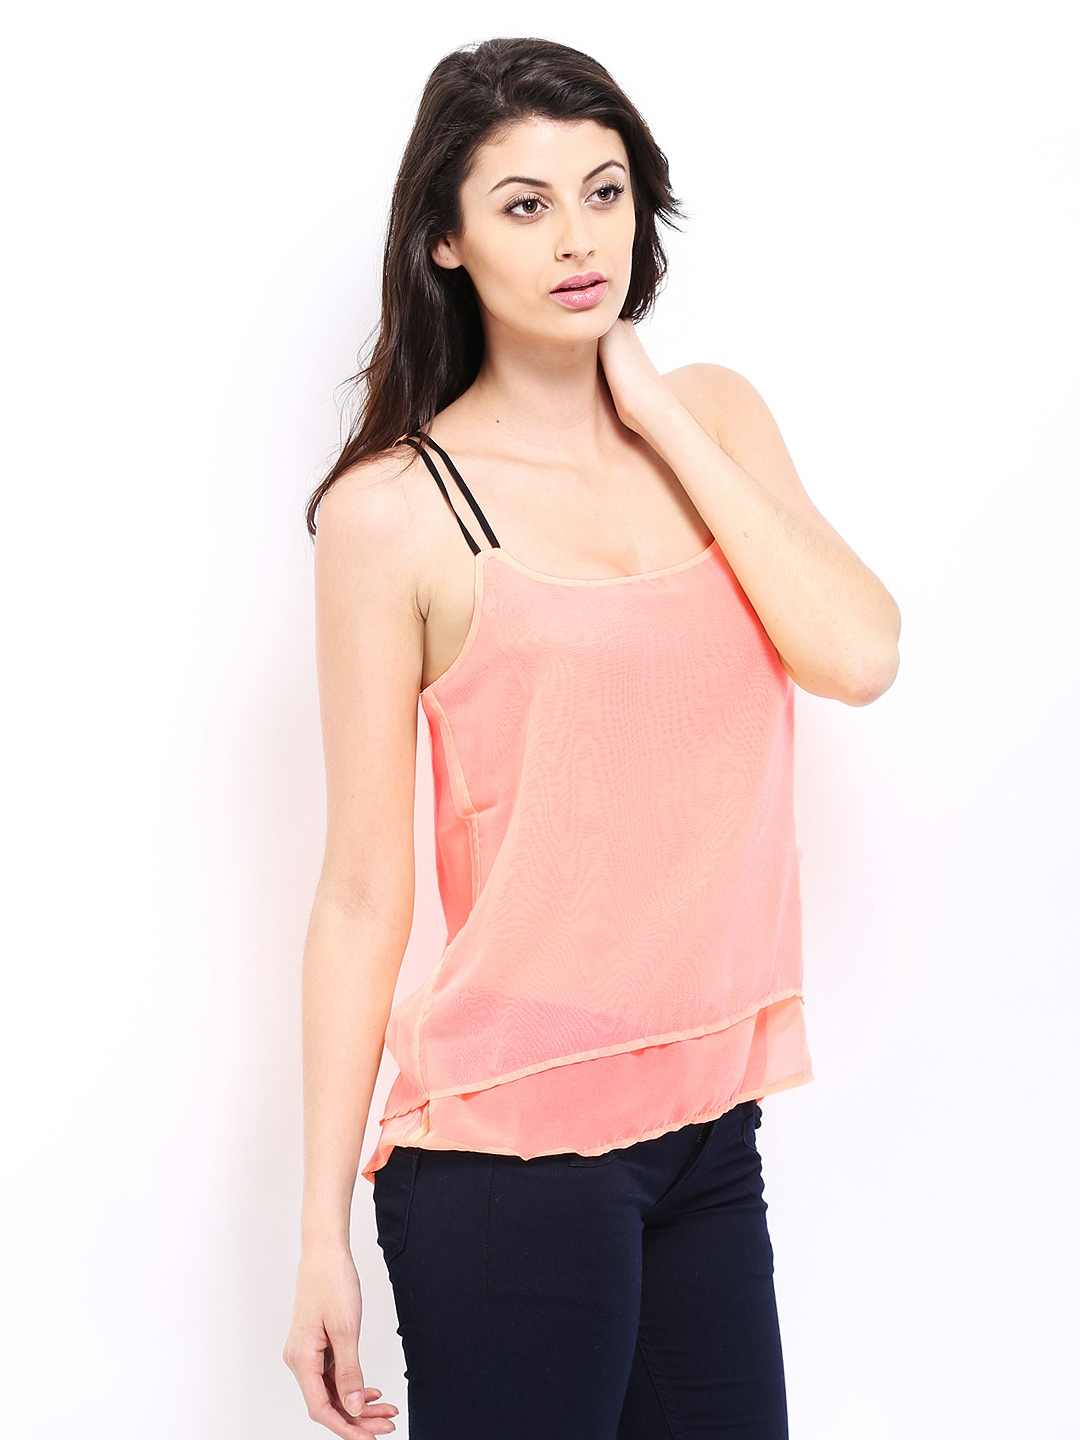 Neon Tank Tops from Spreadshirt Unique designs Easy 30 day return policy Shop Neon Tank Tops now!